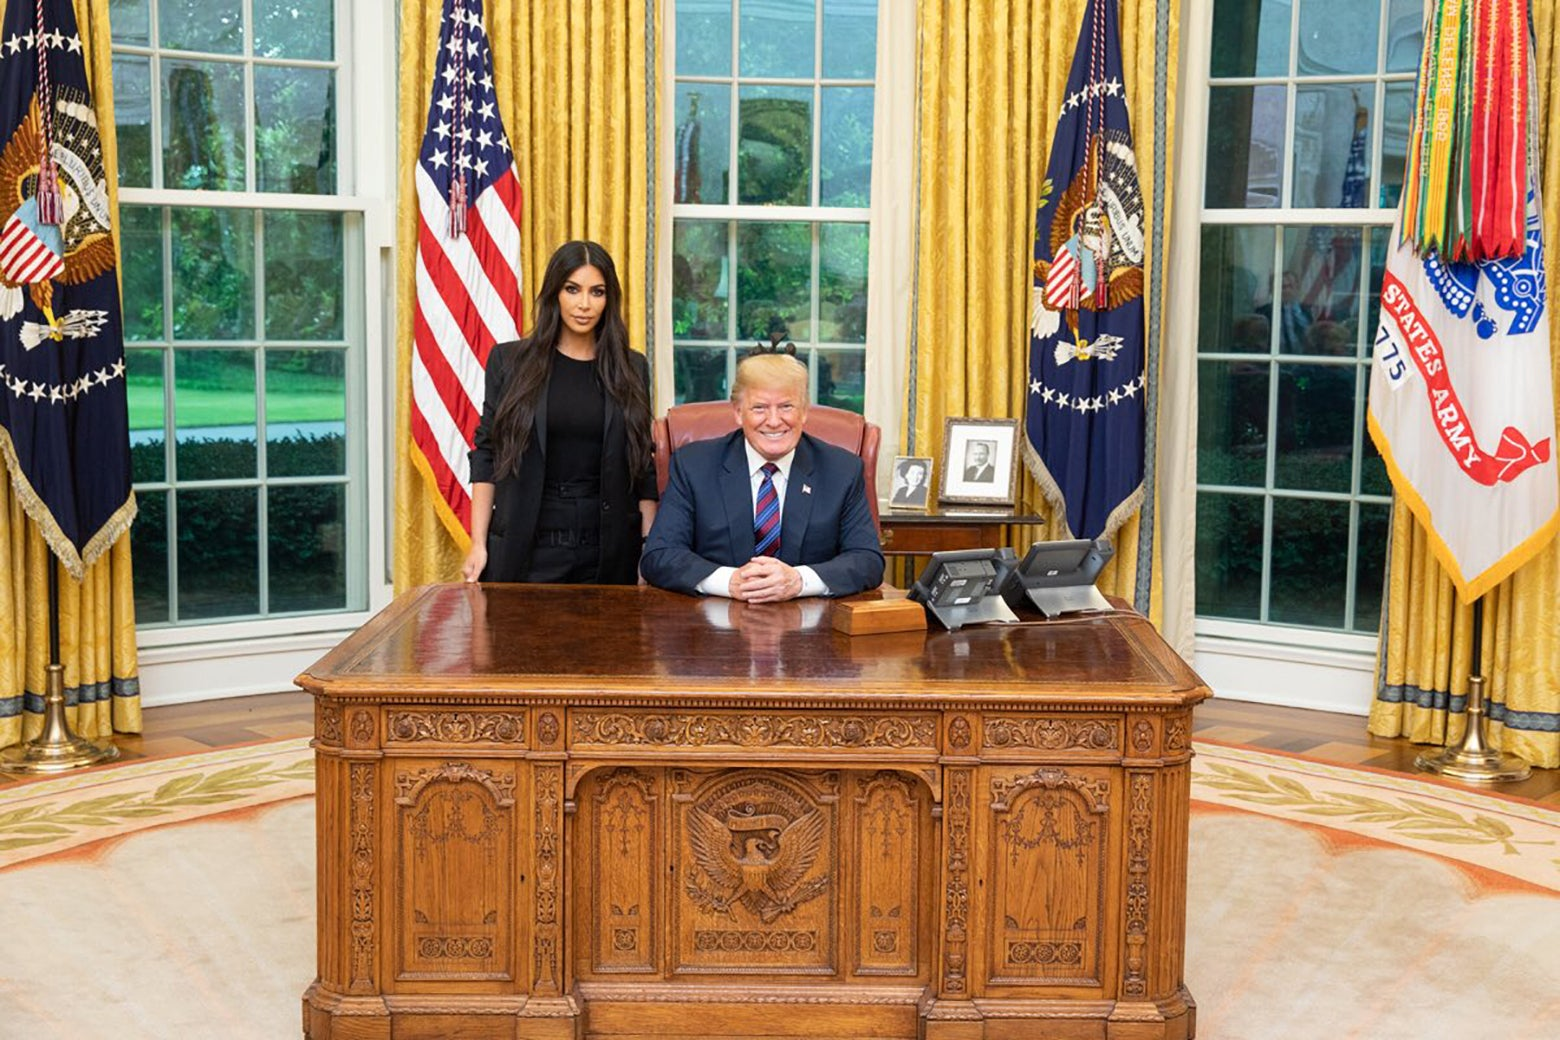 Kim Kardashian West and Donald Trump meet in the oval office.